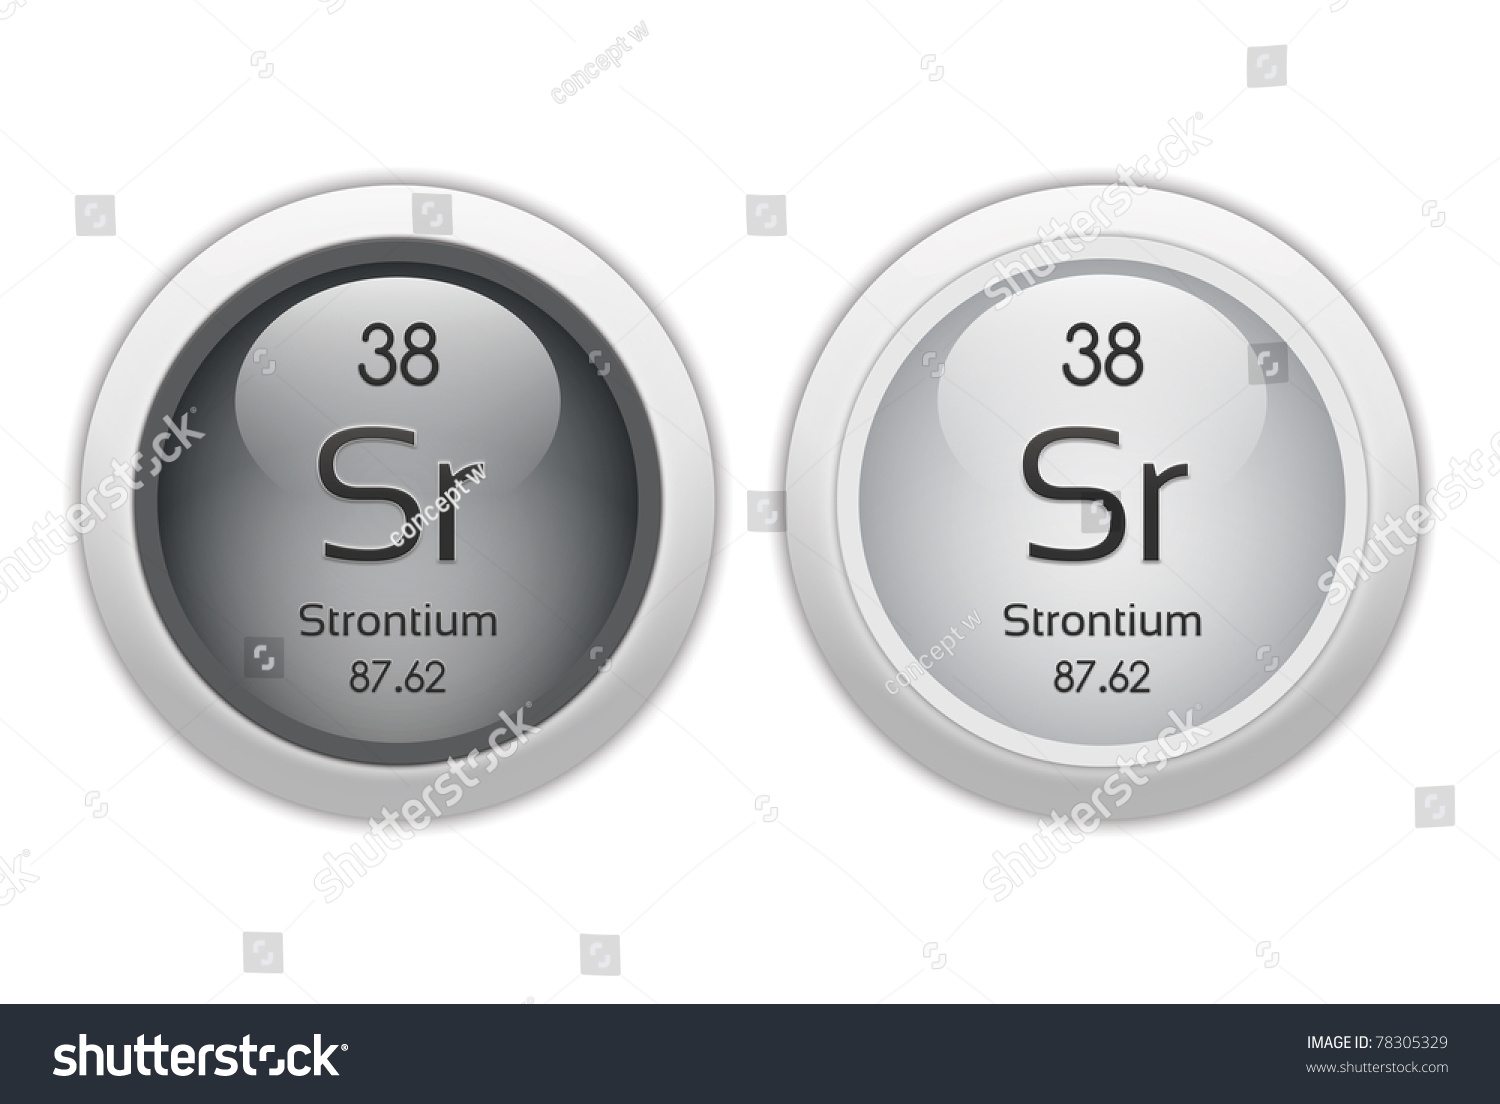 Strontium Two Web Buttons Chemical Element Stock Illustration